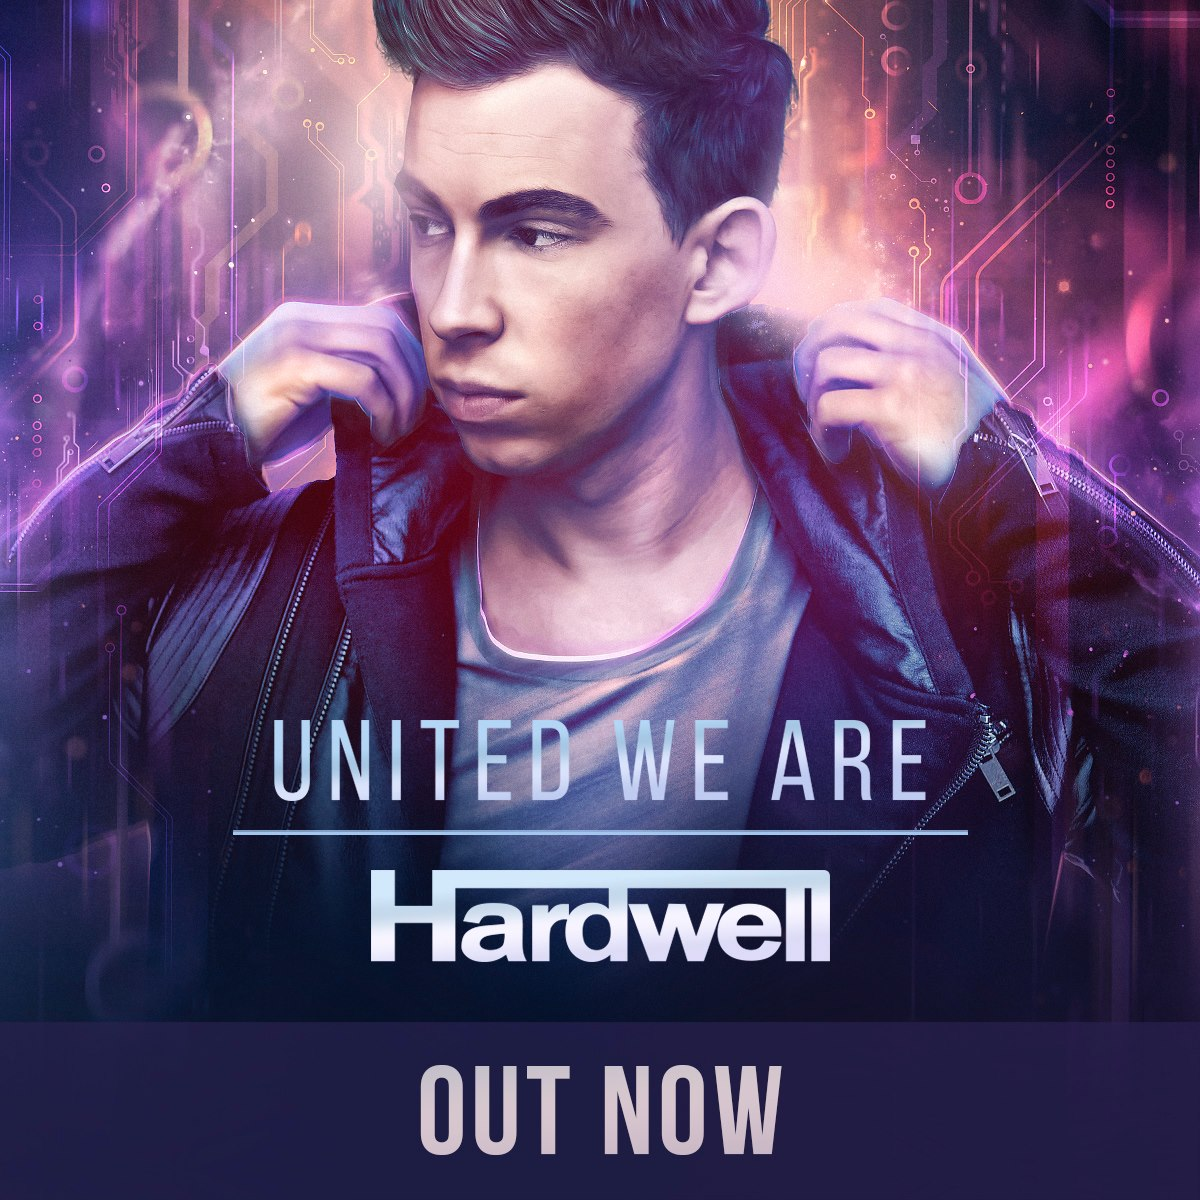 hardwell-united-we-are